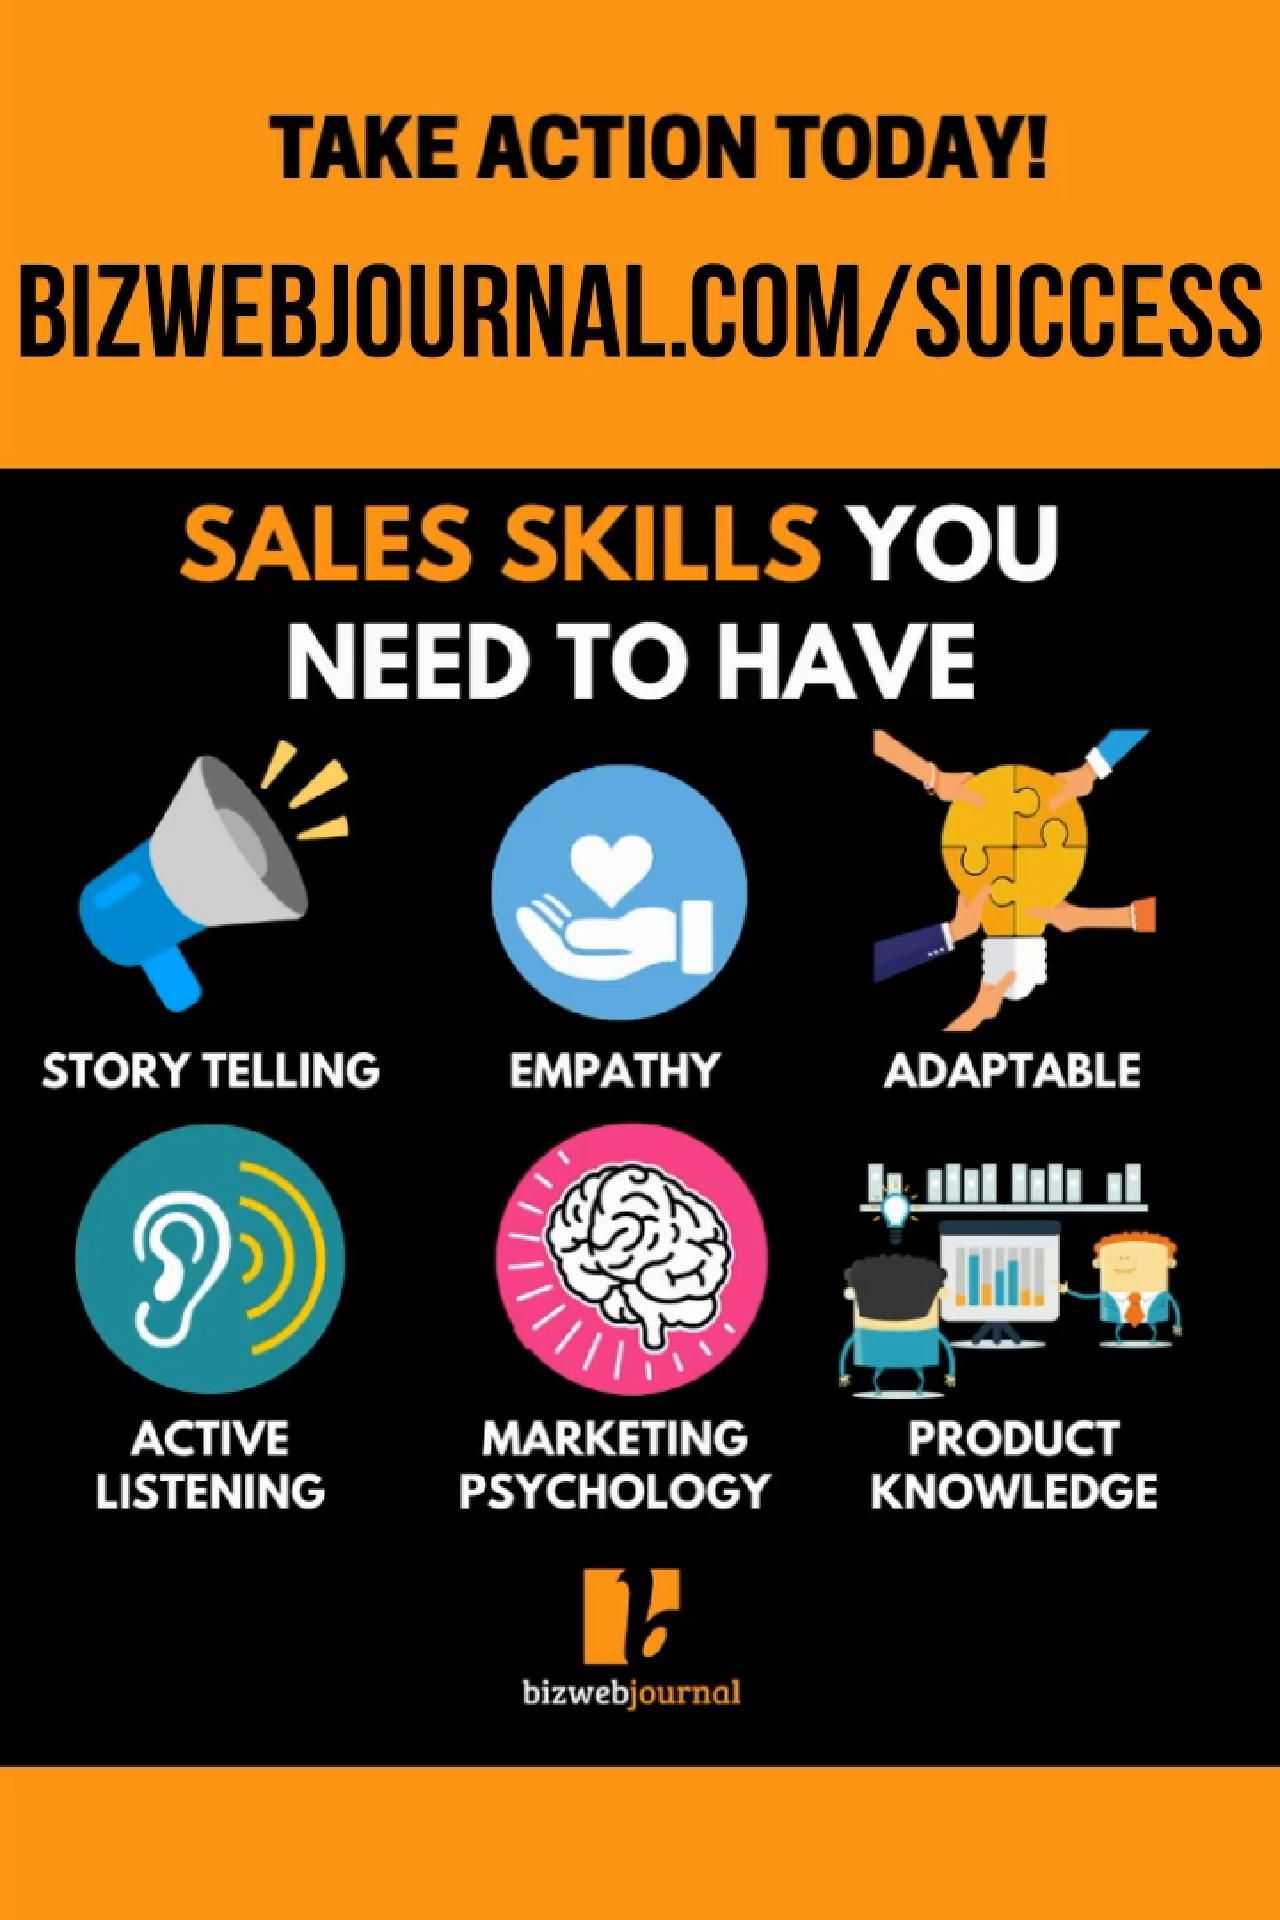 Sales Skills You Need To Master